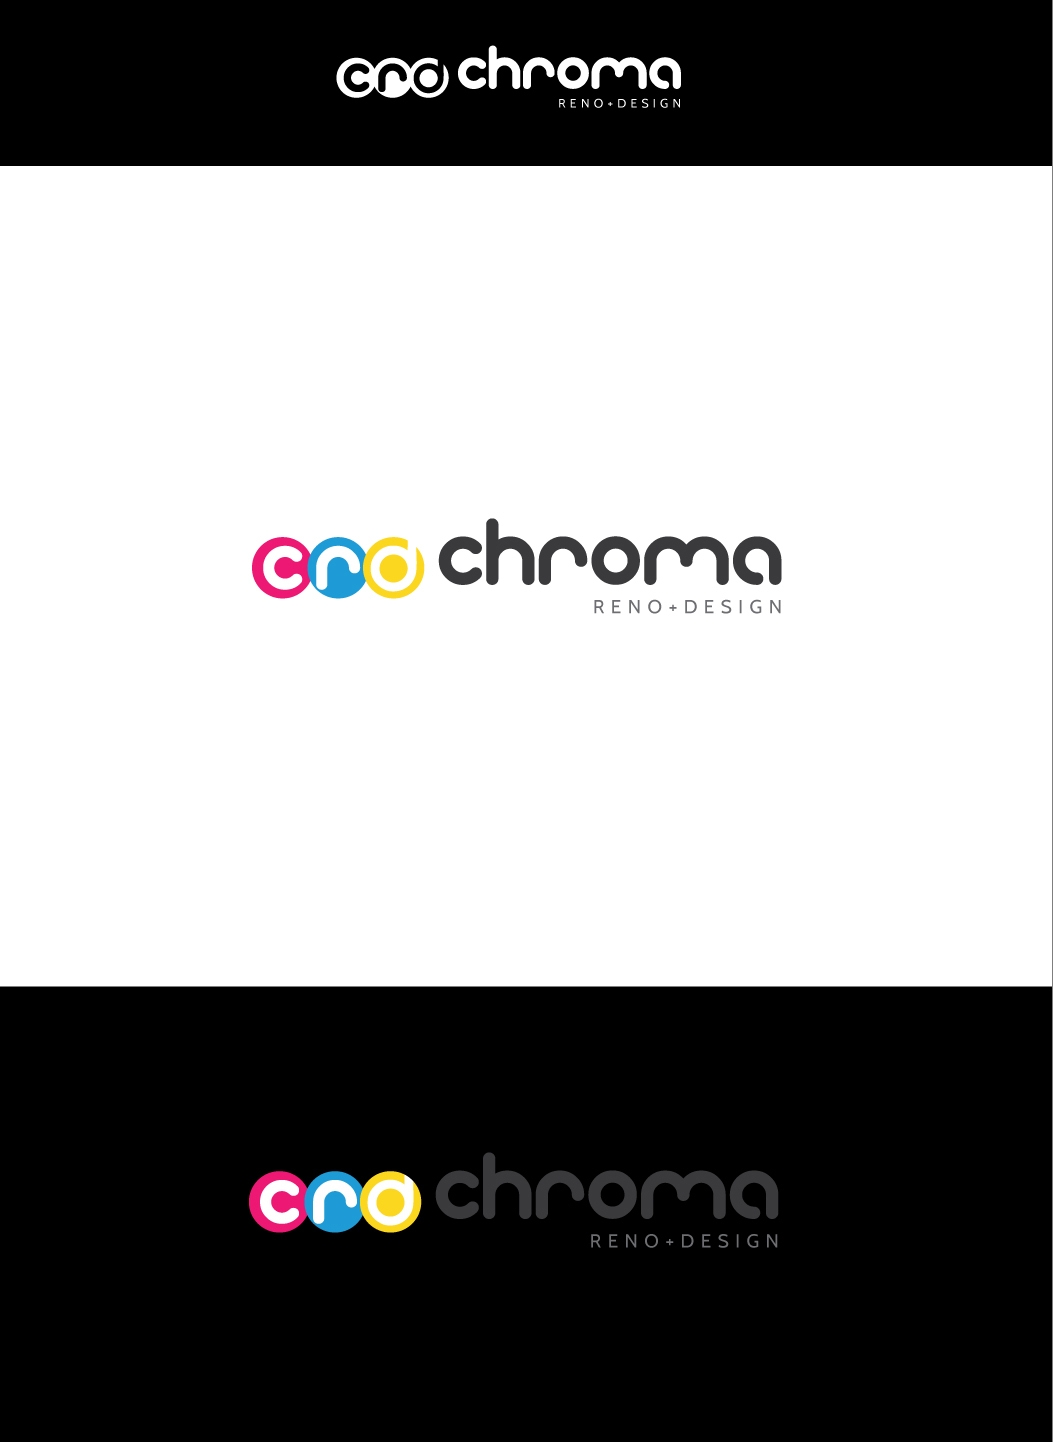 Logo Design by Shameer Okay - Entry No. 313 in the Logo Design Contest Inspiring Logo Design for Chroma Reno+Design.